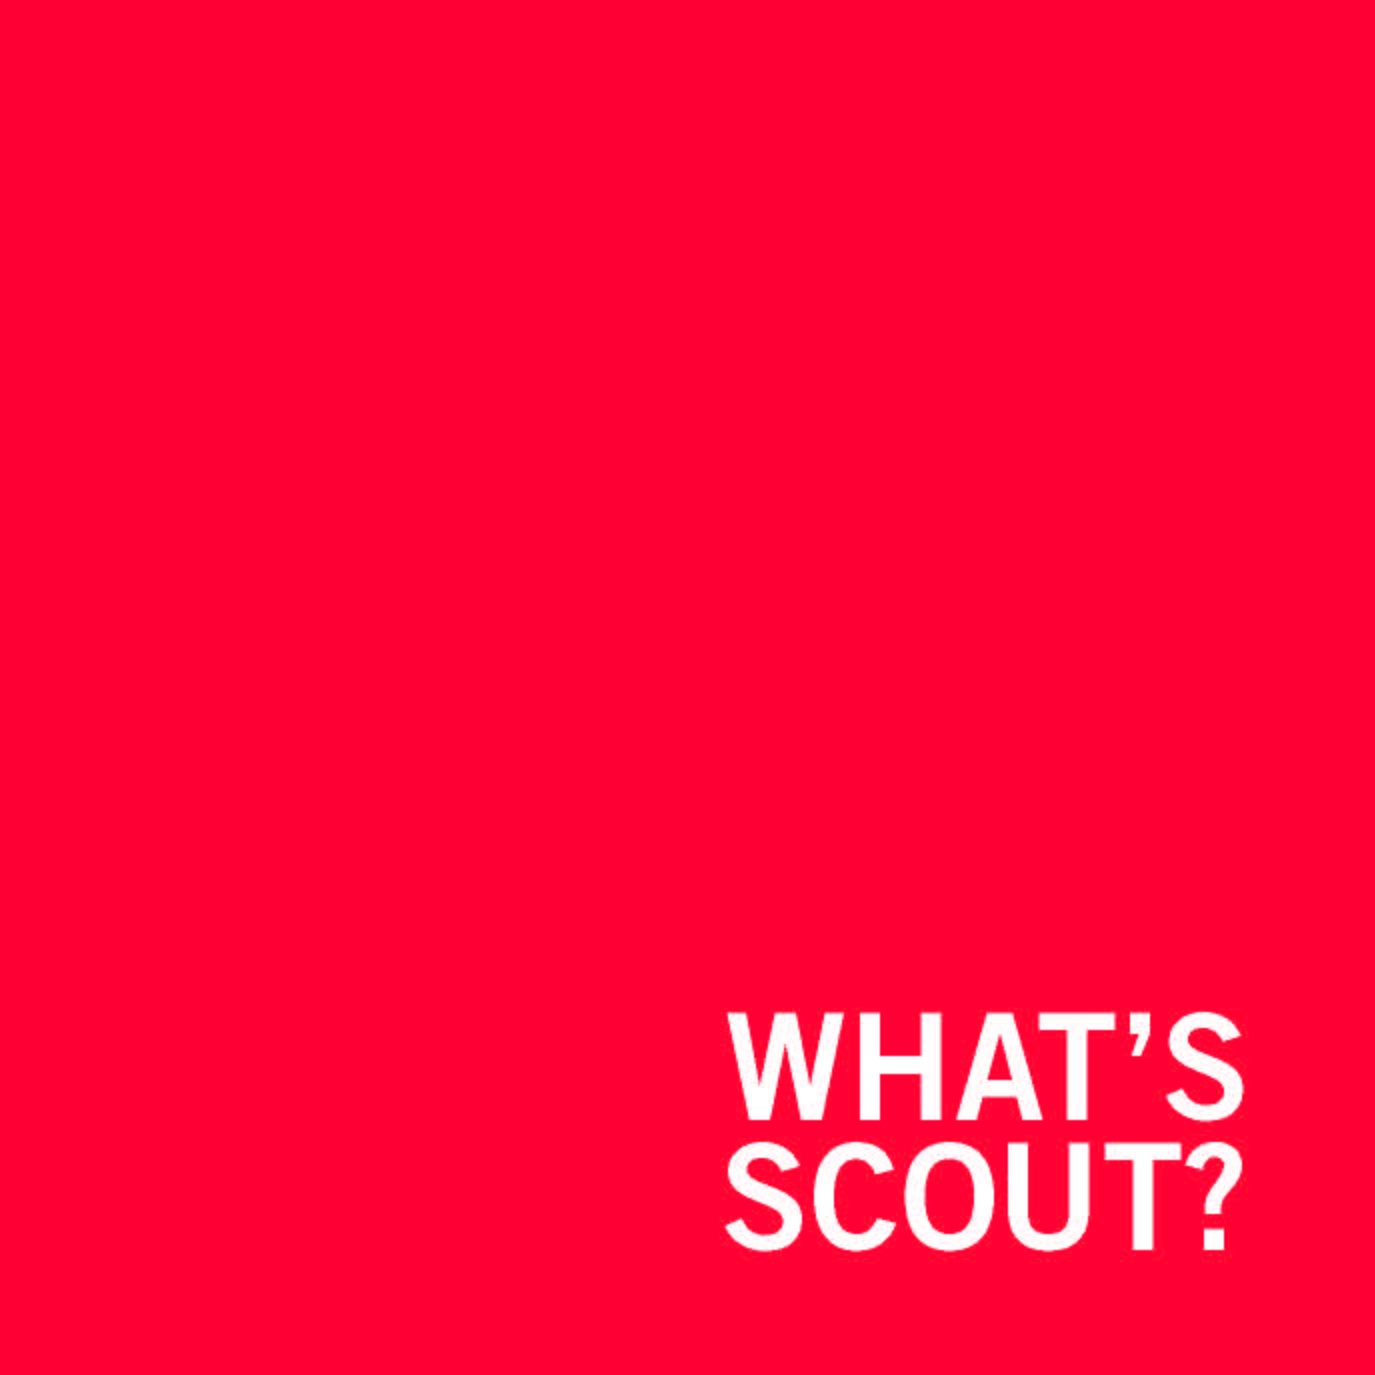 What's Scout? by Jodi Miller